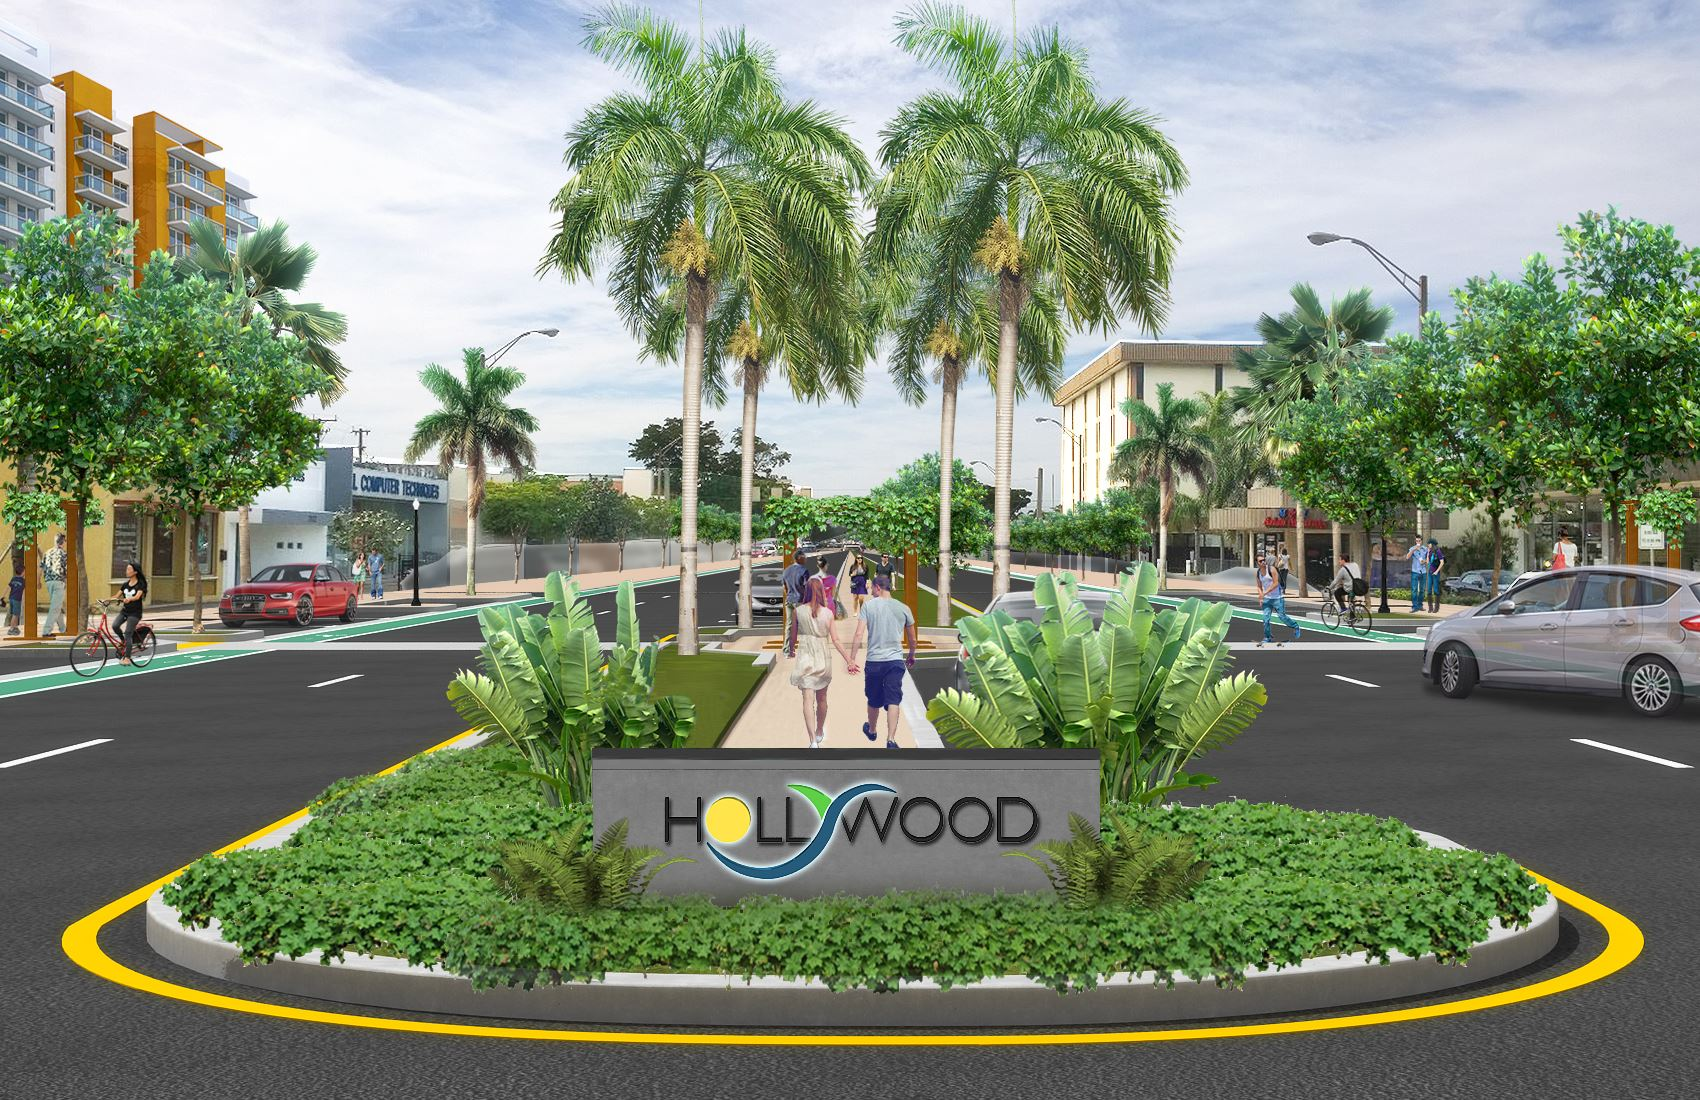 Hollywood Complete Streets Rendering